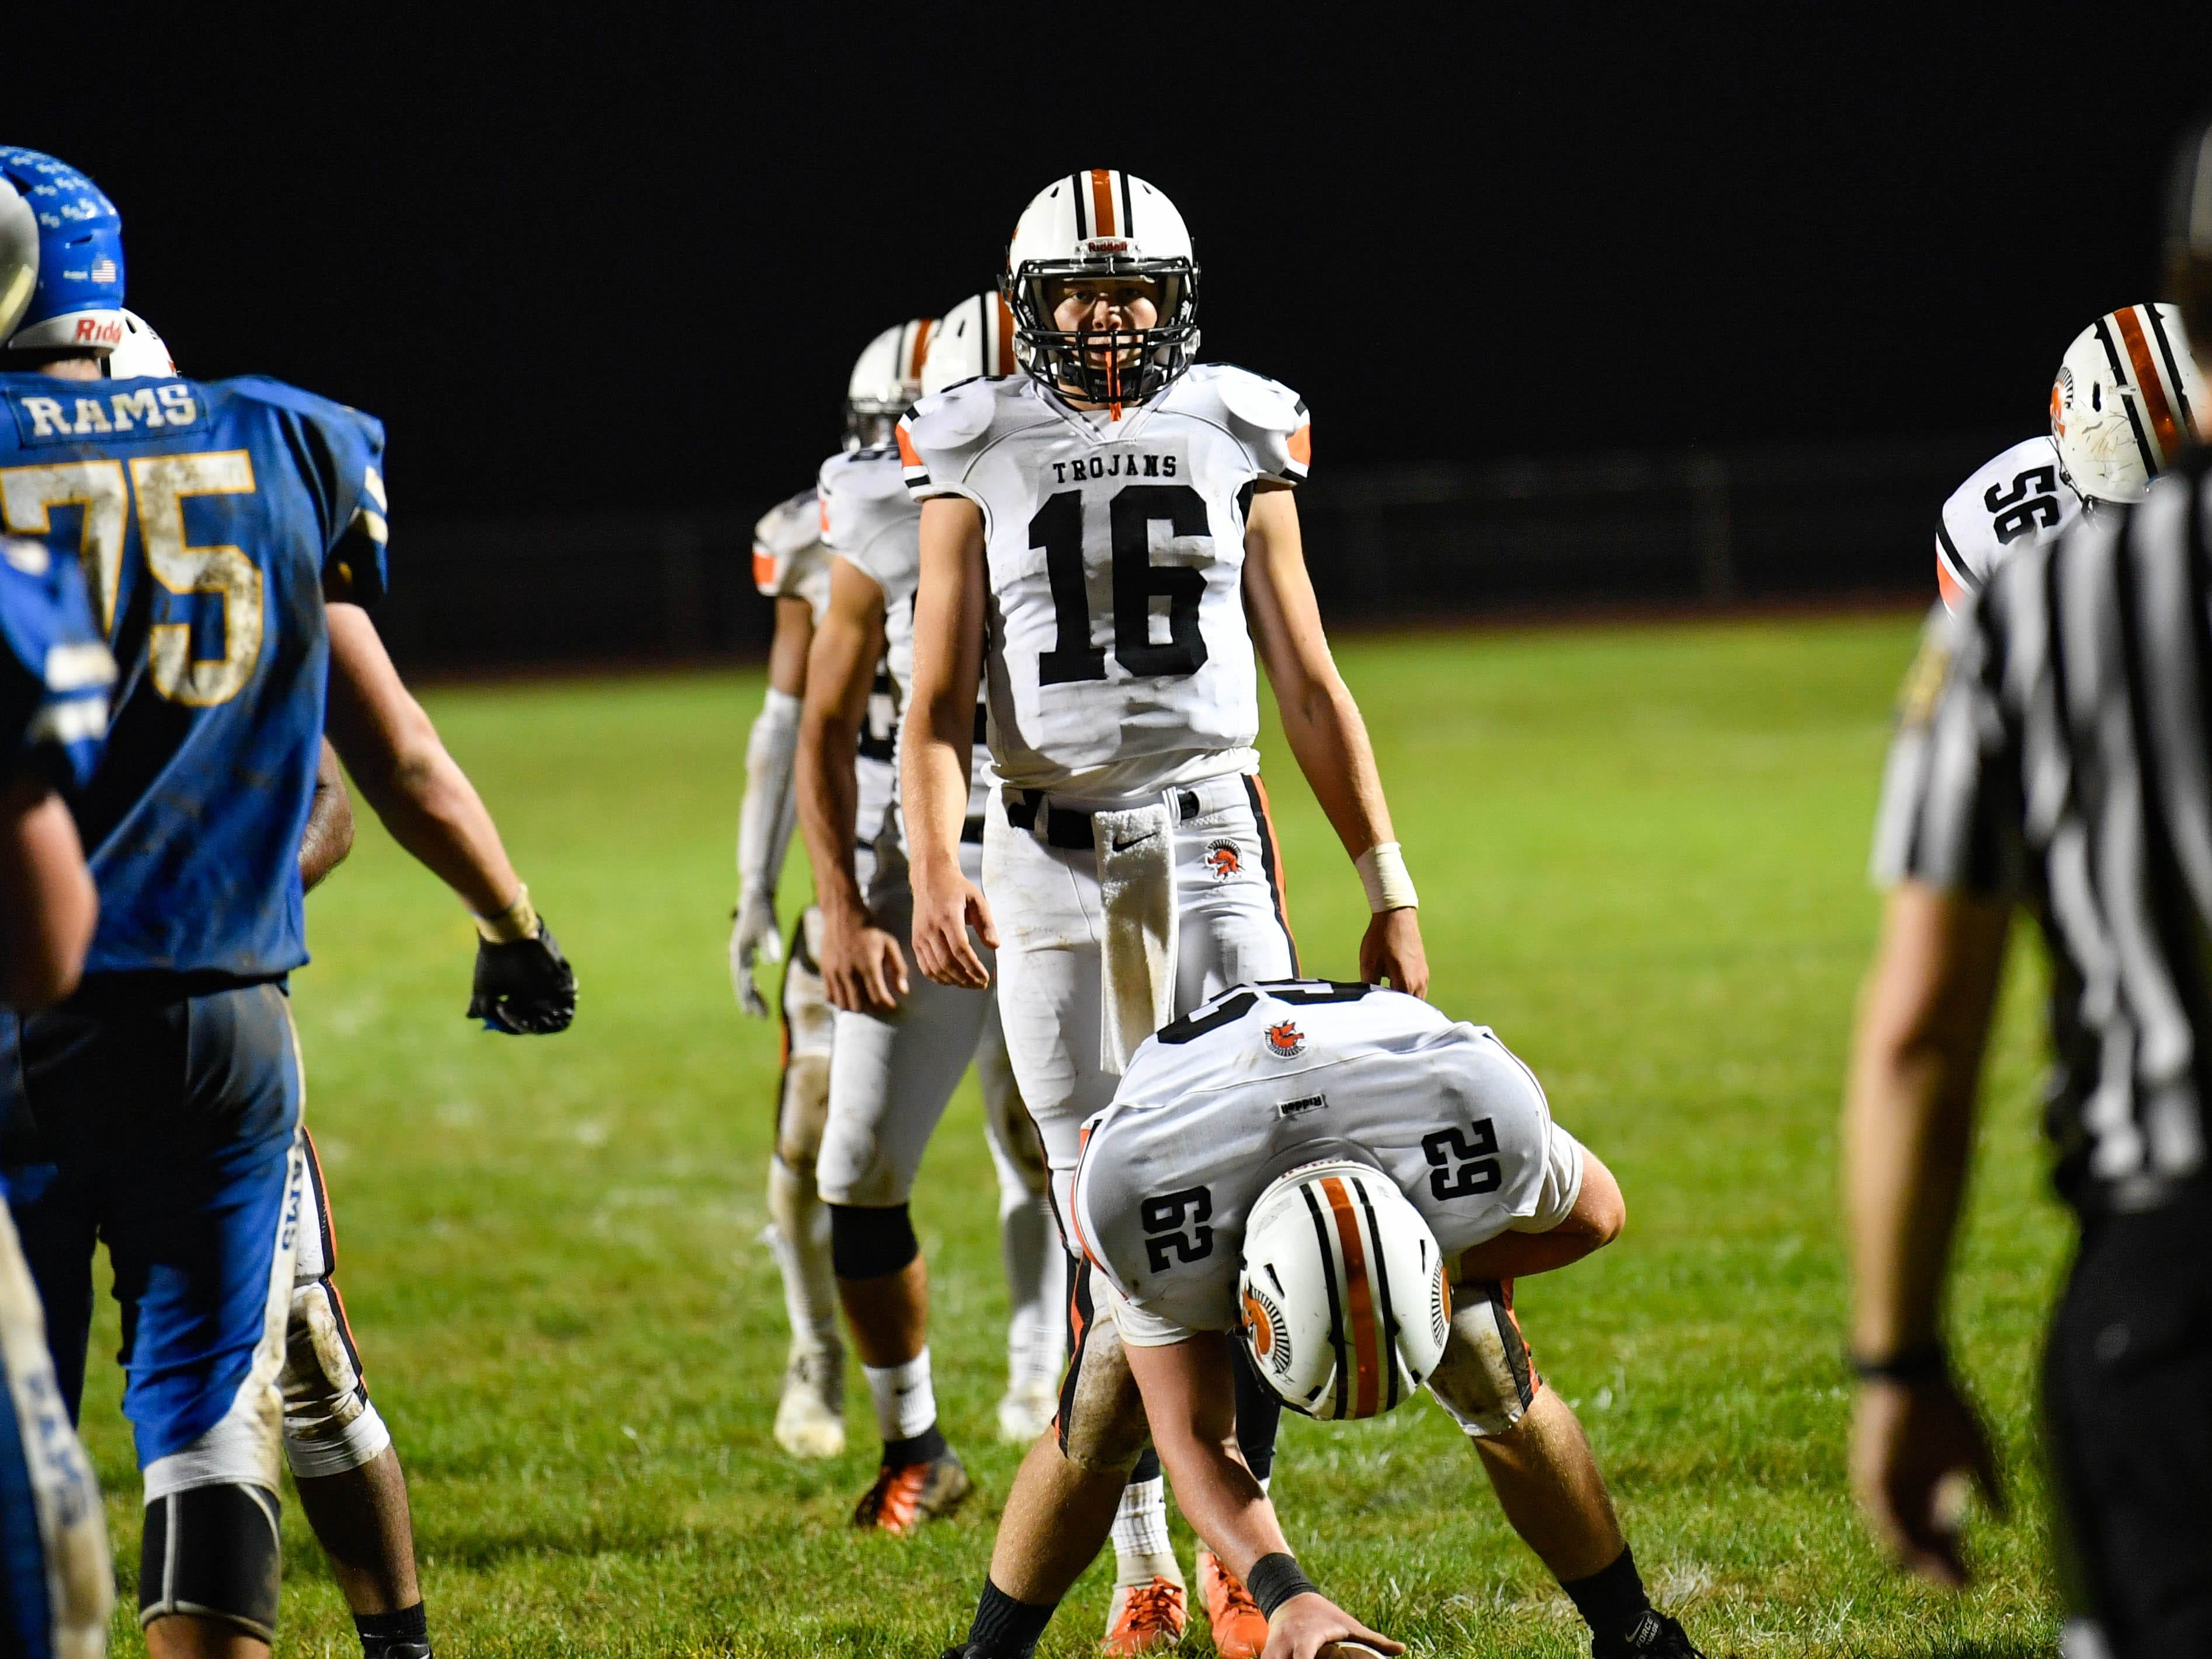 Max Reinecker (16) analyzes the defense before snapping the ball, Friday, September 21, 2018. The York Suburban Trojans beat the Kennard-Dale Rams 31-25.